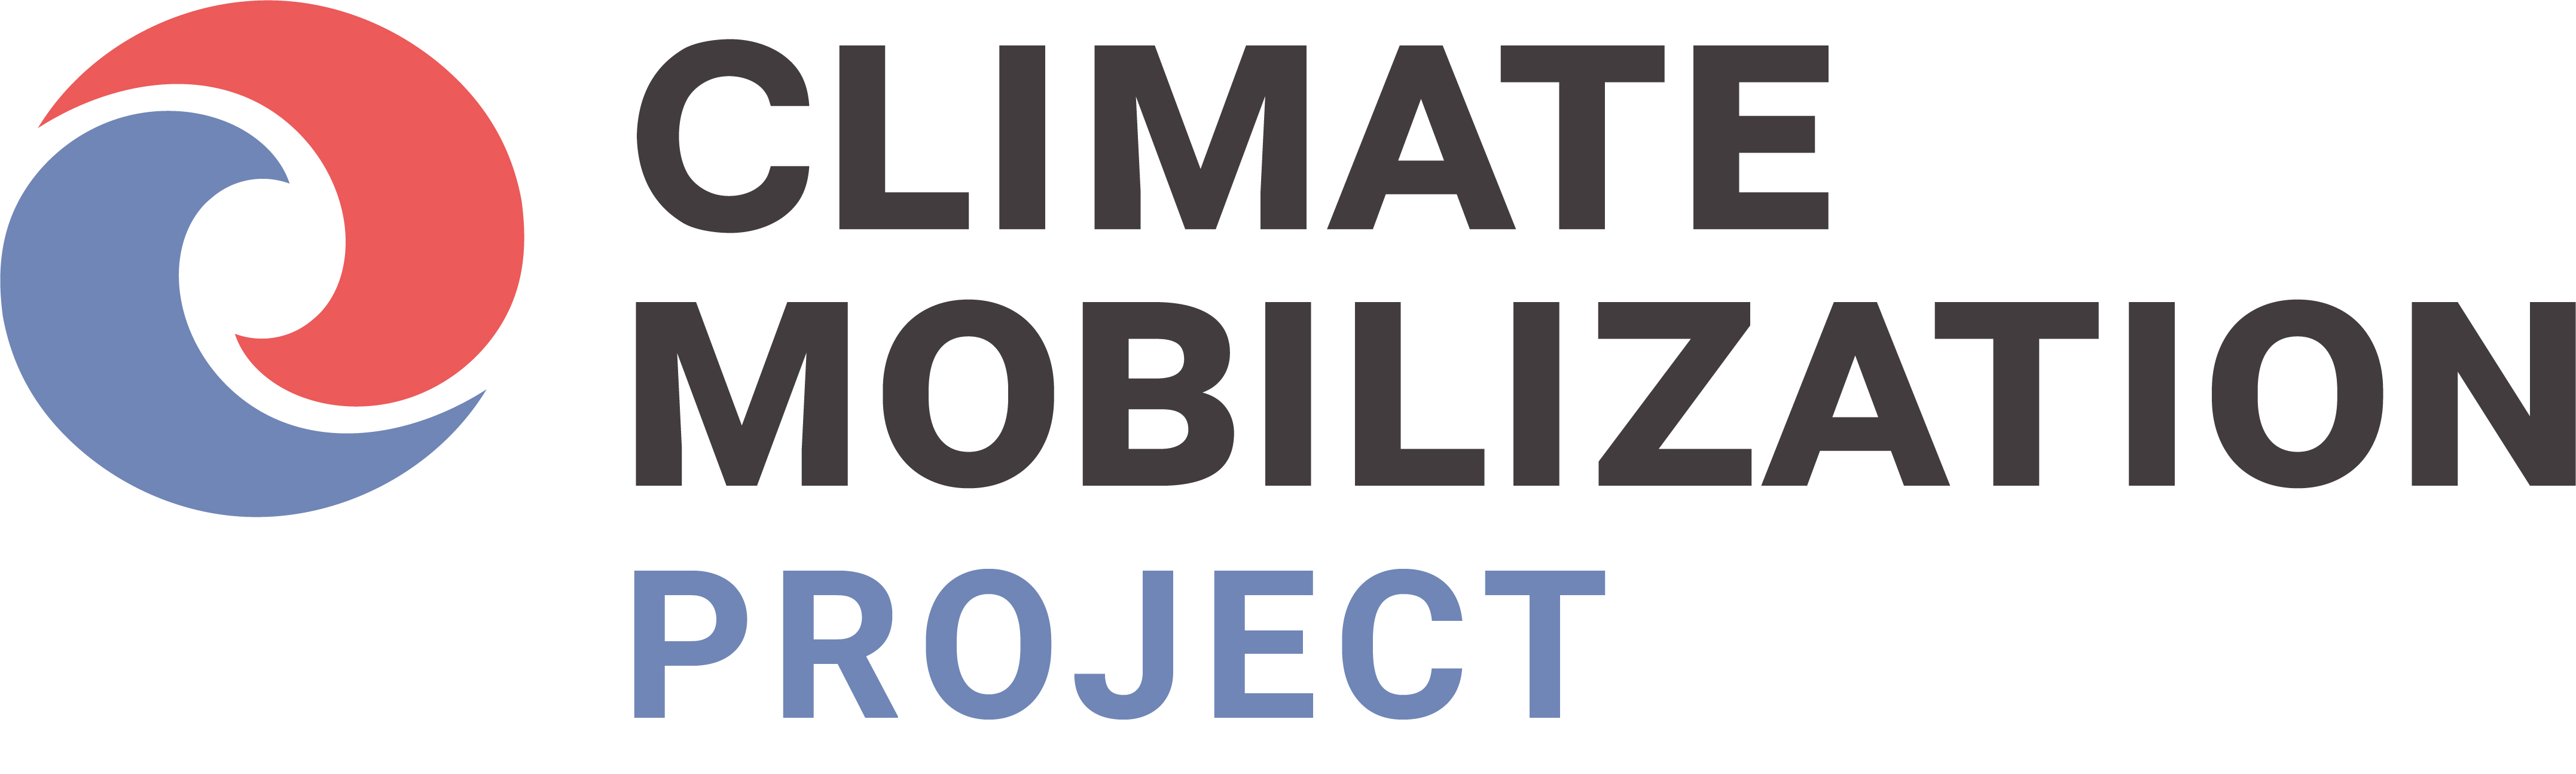 Climate Mobilization Project